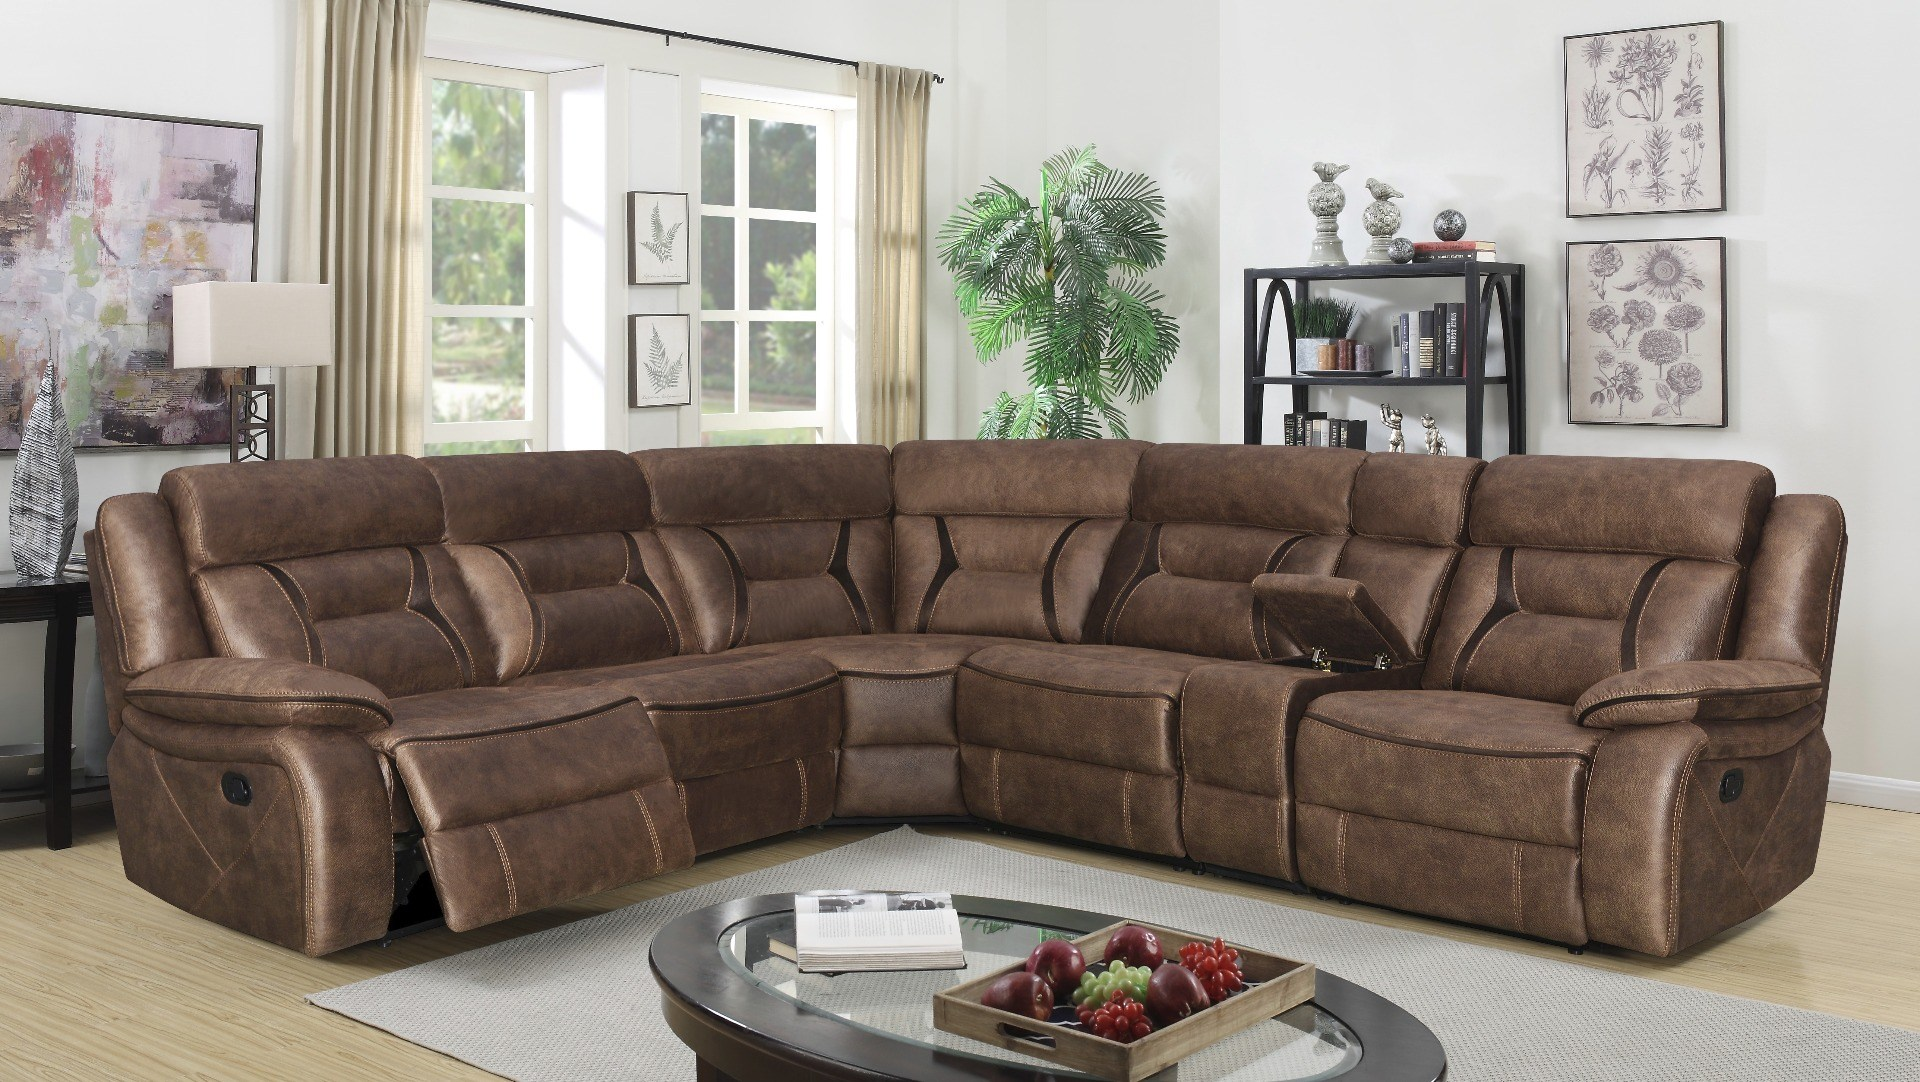 Ashbrook Furniture Store Manchester Nh Nashua Nh